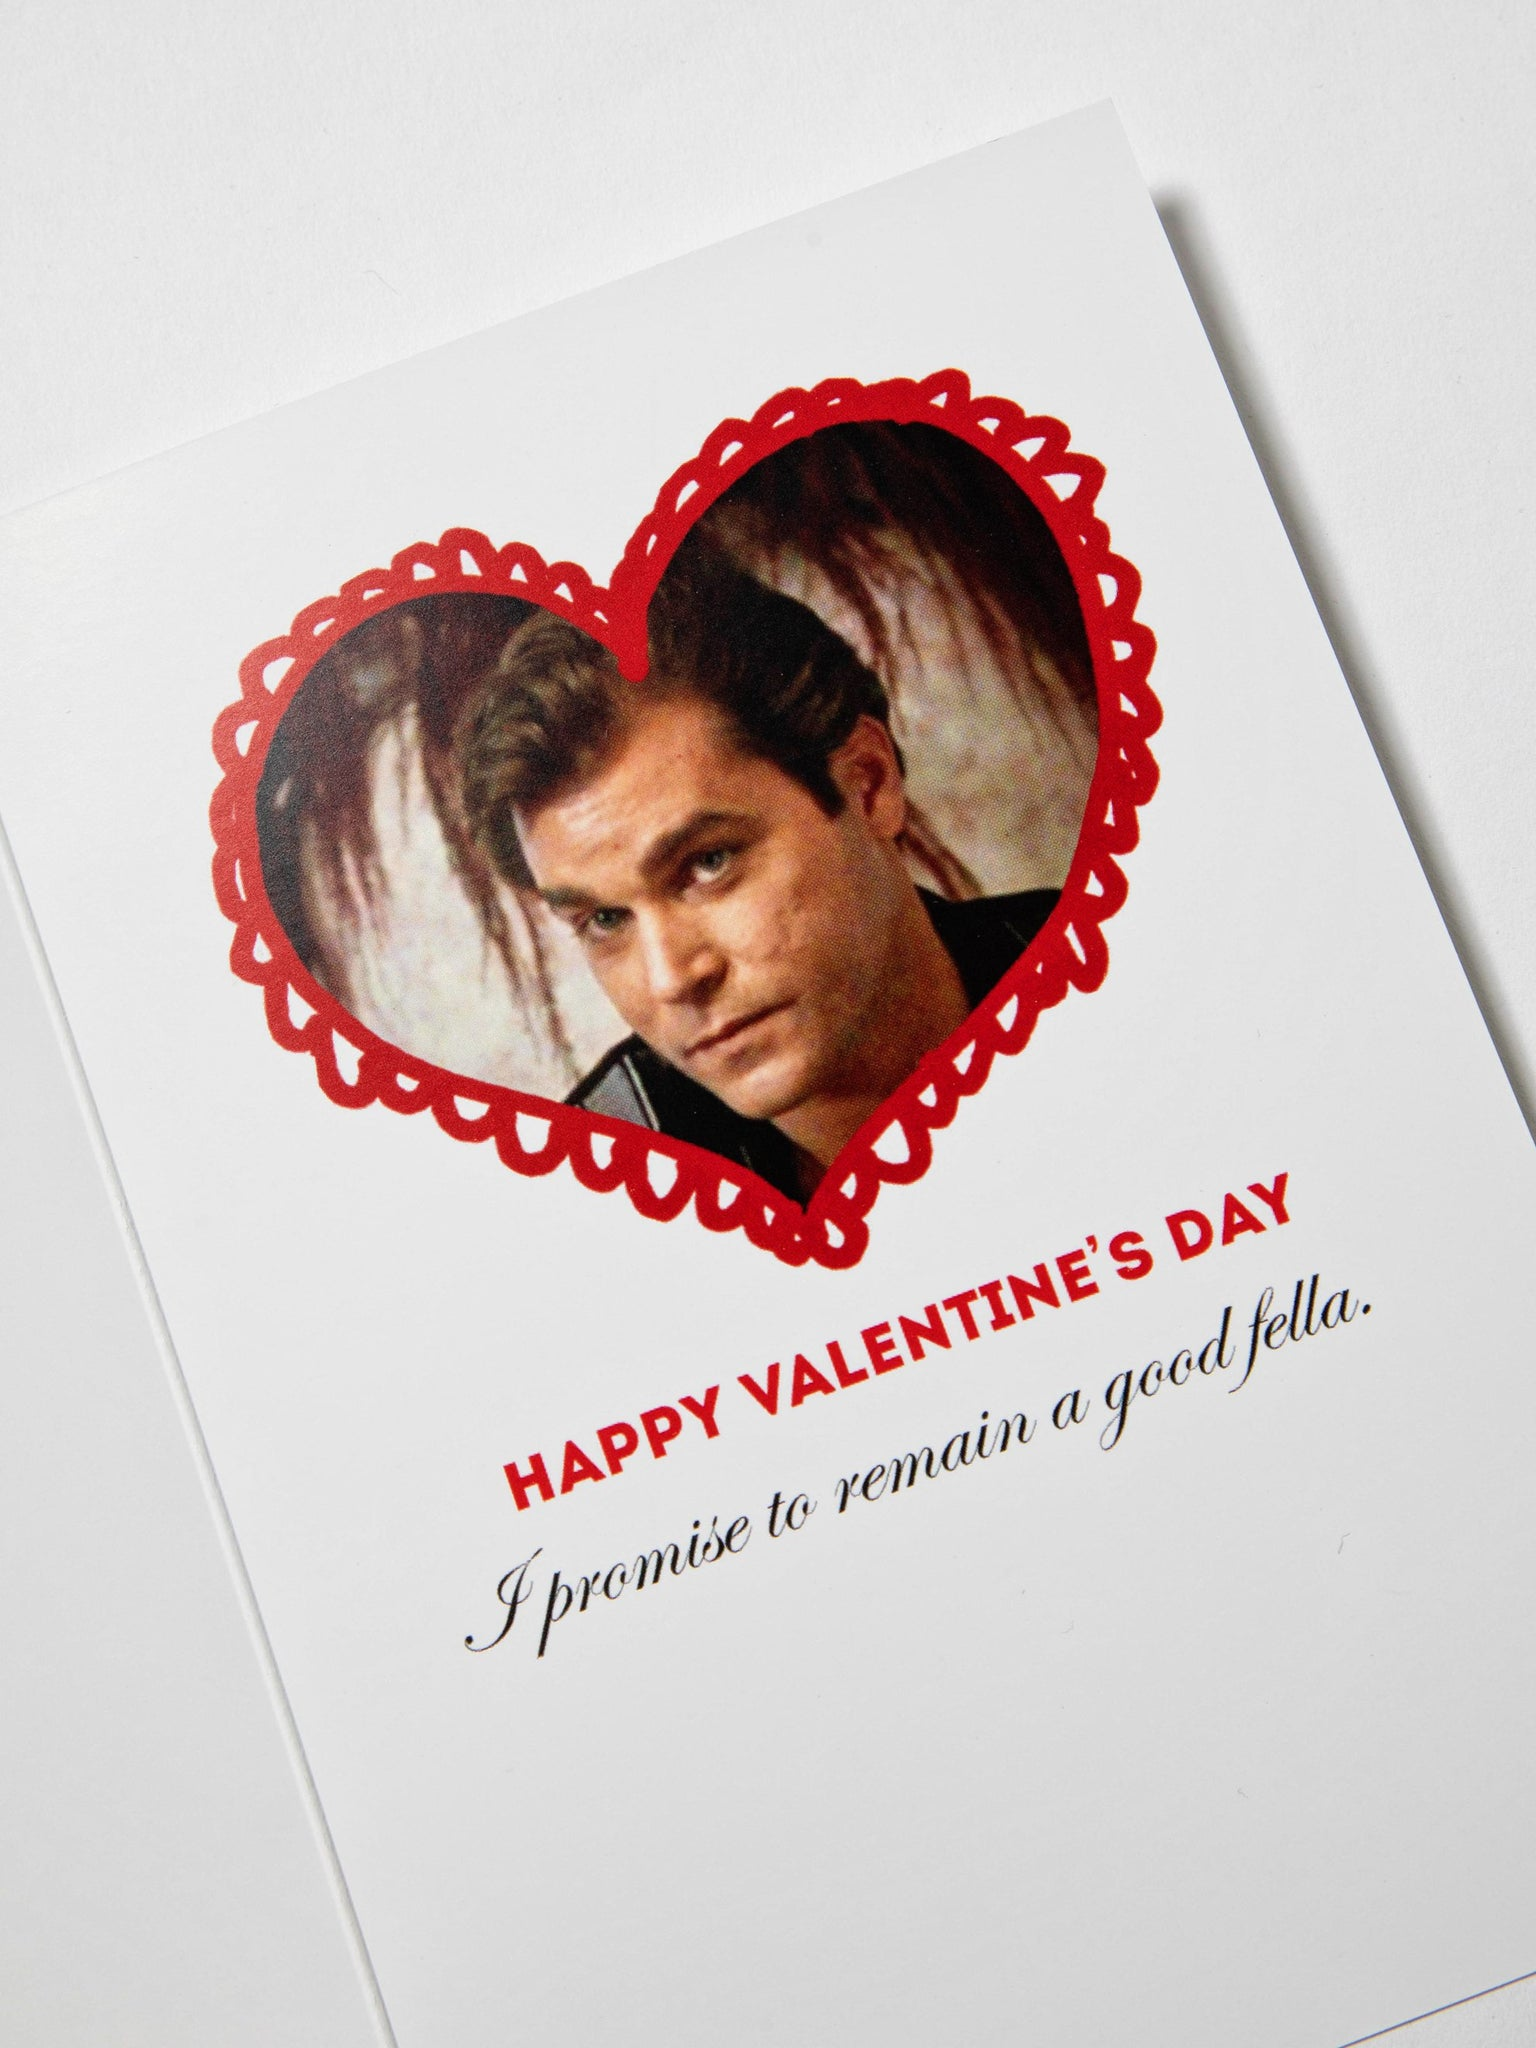 goodfella-valentimez-day-card